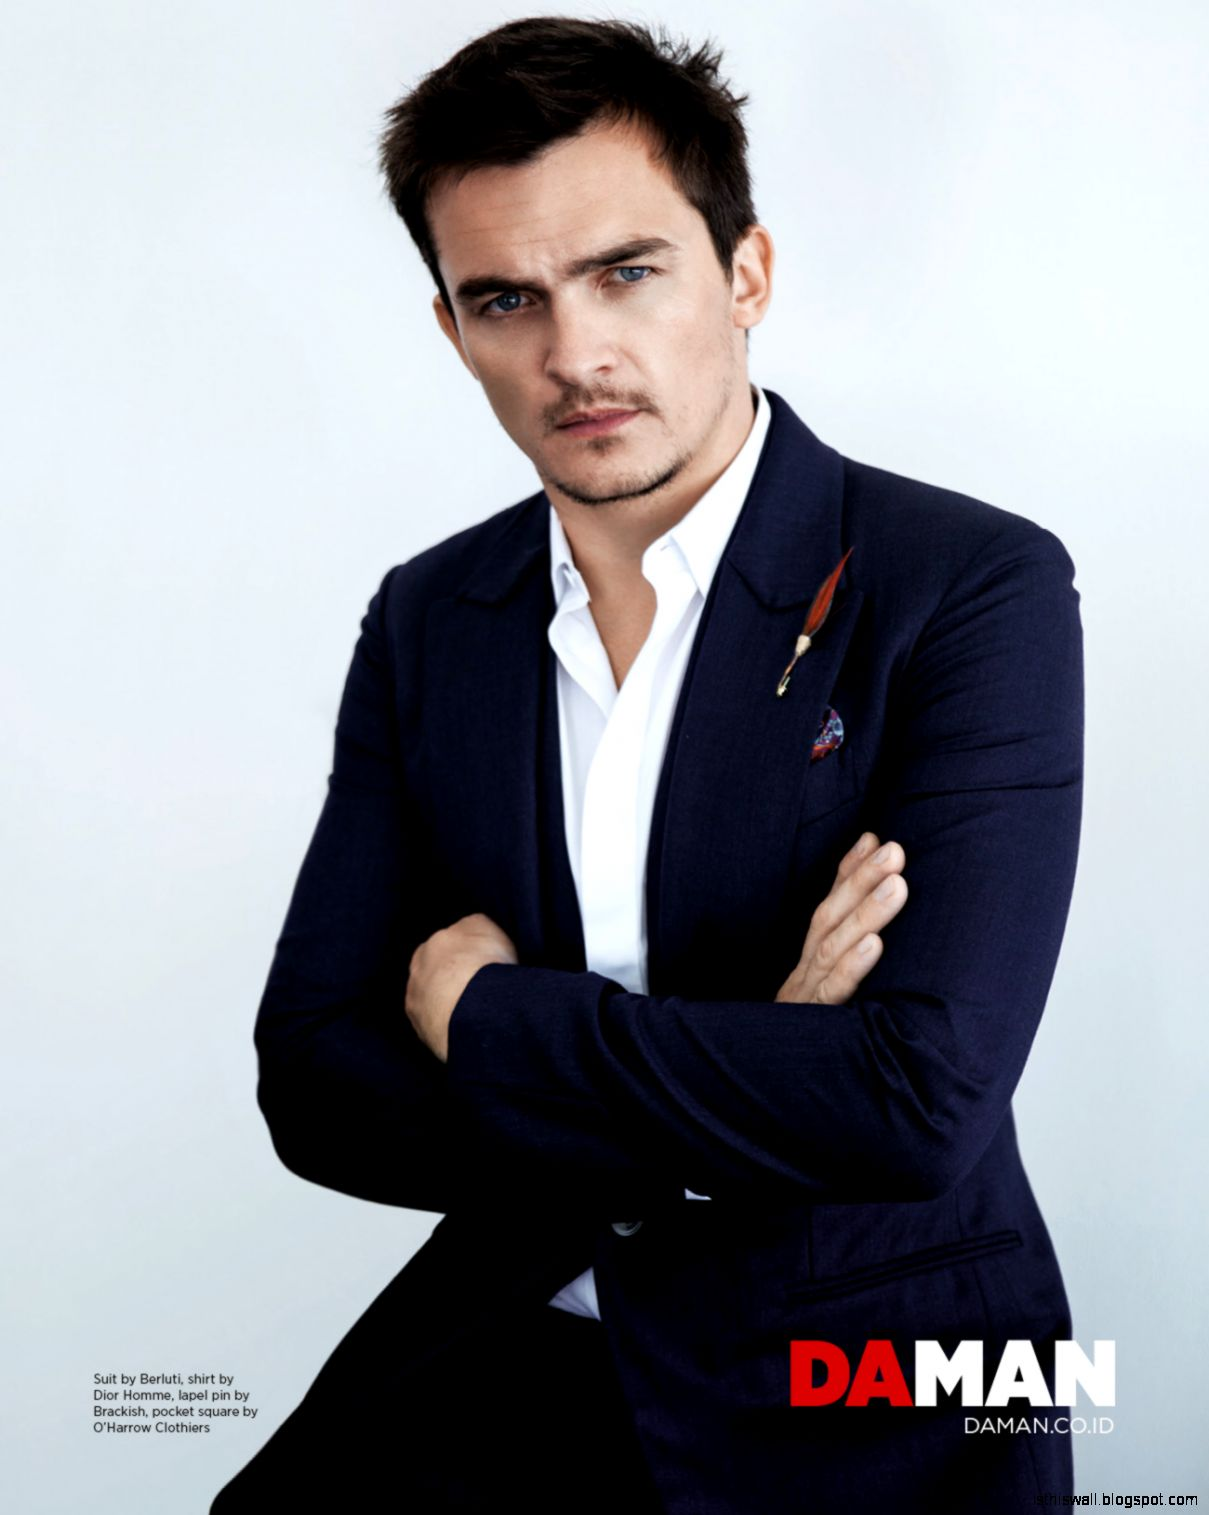 DAMAN Cover Story Rupert Friend  Im a Rupert Friend Fan